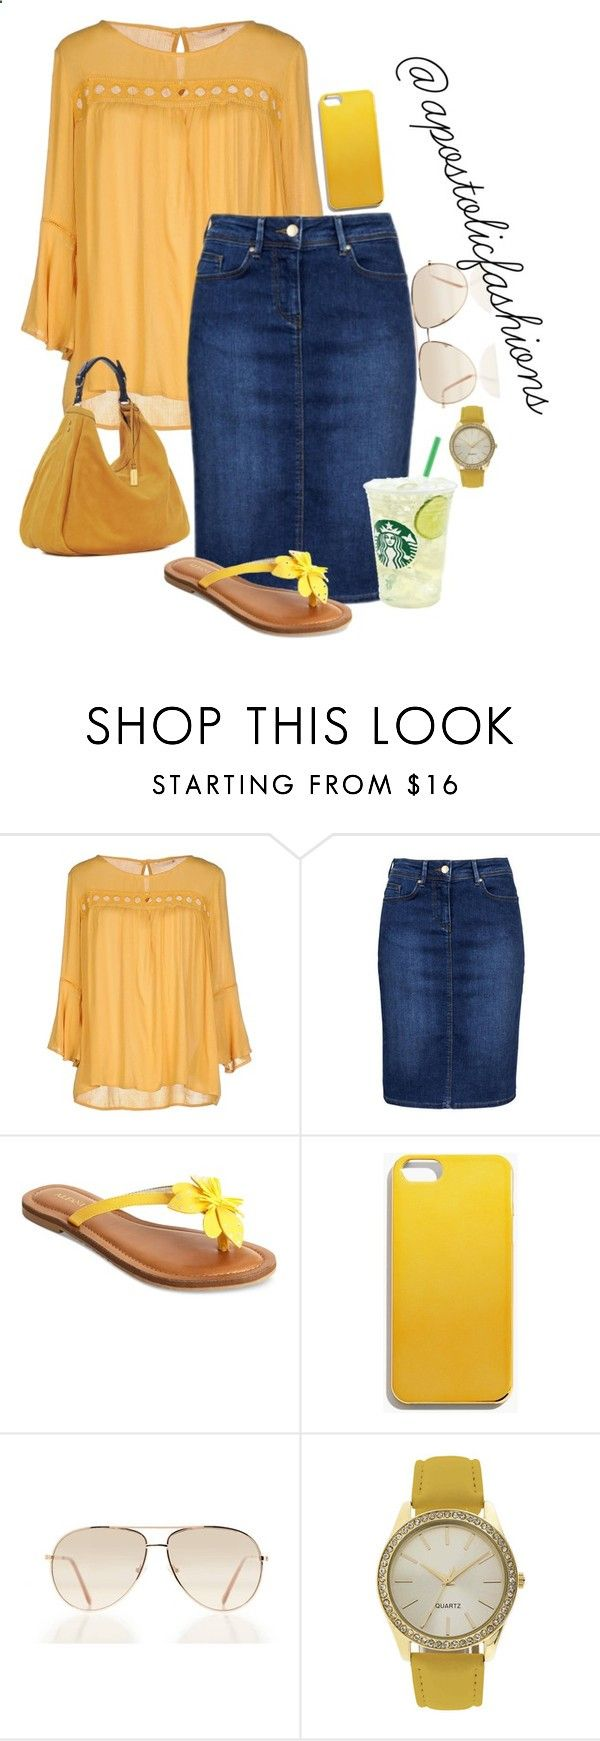 Apostolic Fashions #1446 by apostolicfashions on Polyvore featuring ONLY, Alfani, Madewell, American Eagle Outfitters, RABEANCO, modestlykay and modestlywhit